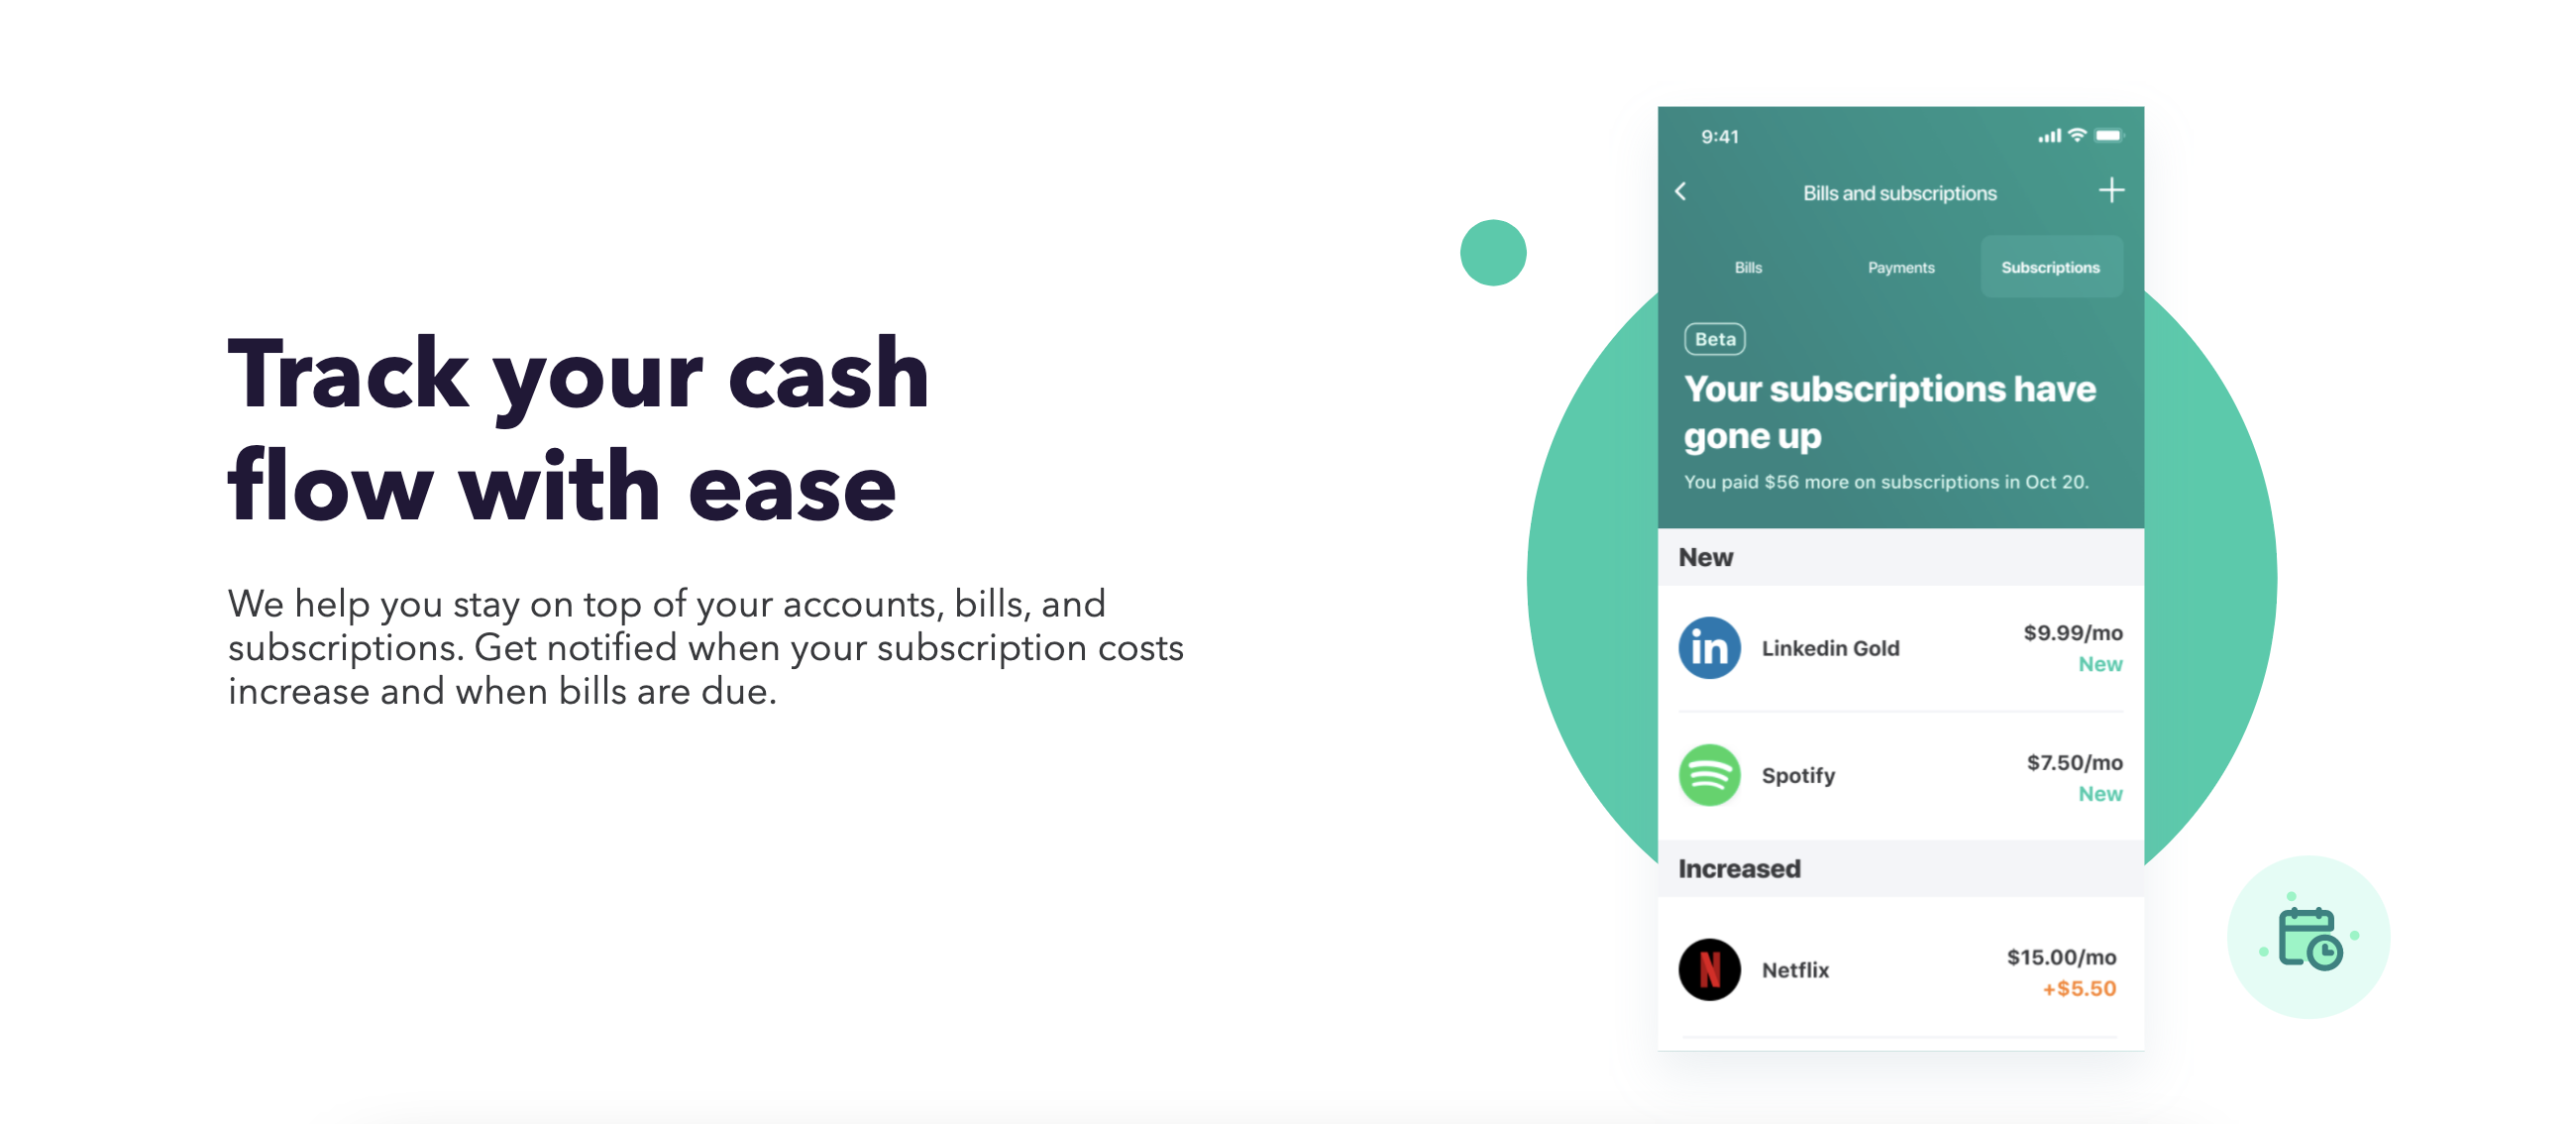 One of our favorite features of Mint is the subscription and bill tracker. It can be difficult to keep up with all your subscriptions, so Mint notifies you if they've gone up or when they're going to renew. You can also stay up to date on your bills and get notifications when payments are coming up. Image from minit.intuit.com.